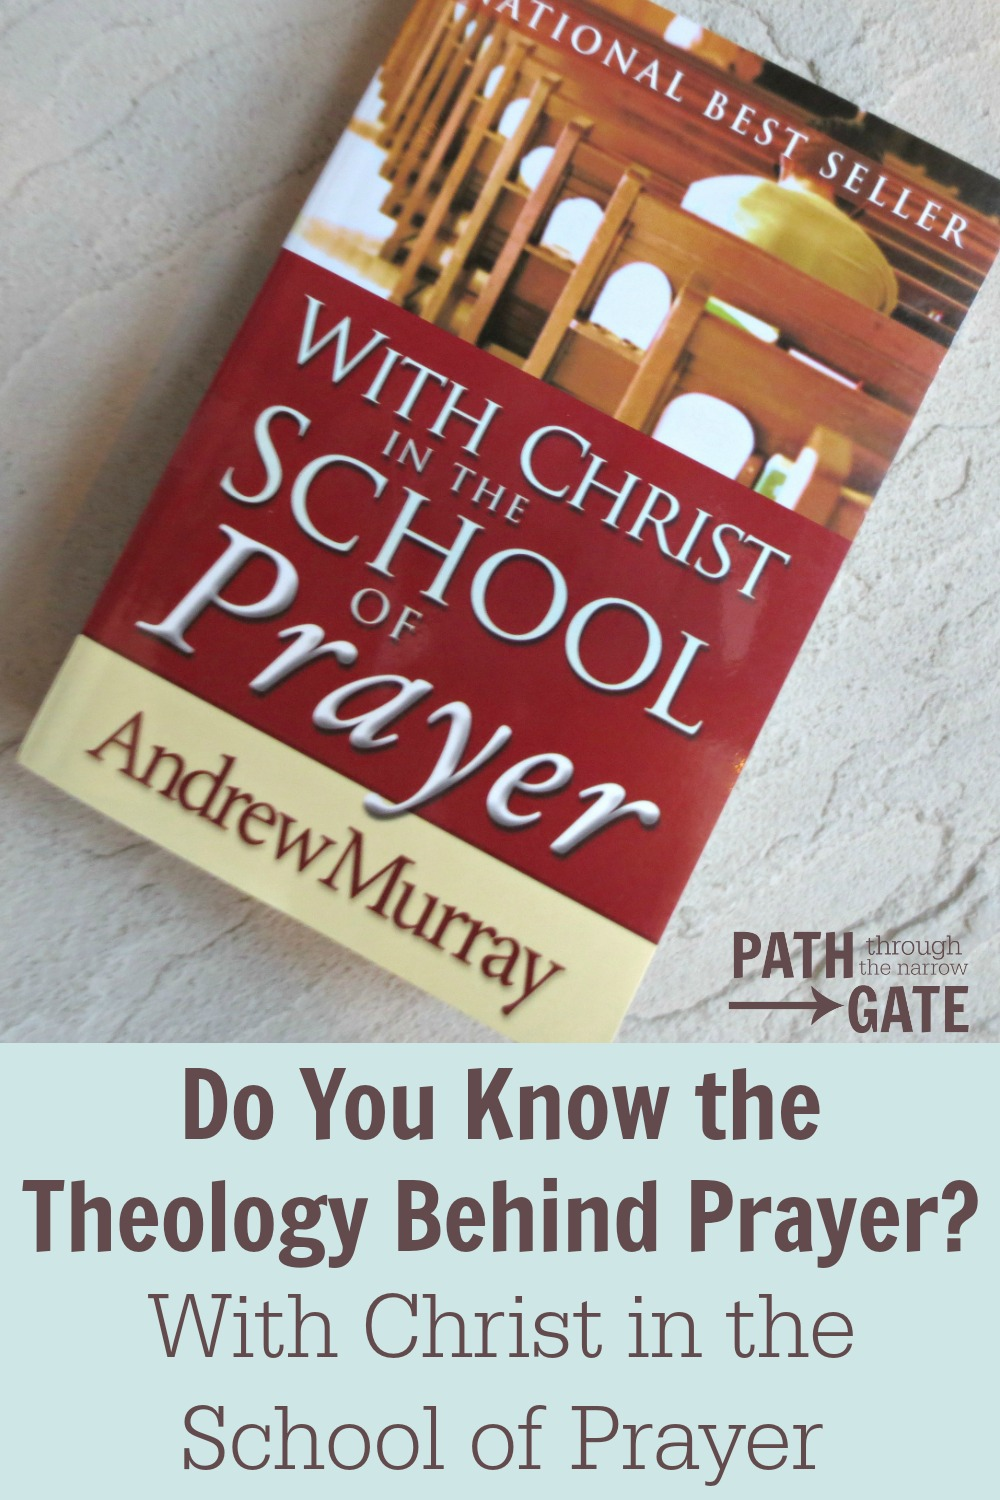 Would you like to learn more about prayer? With Christ in the School of Prayer will help you understand the purpose of prayer and how you can pray according to God's will.